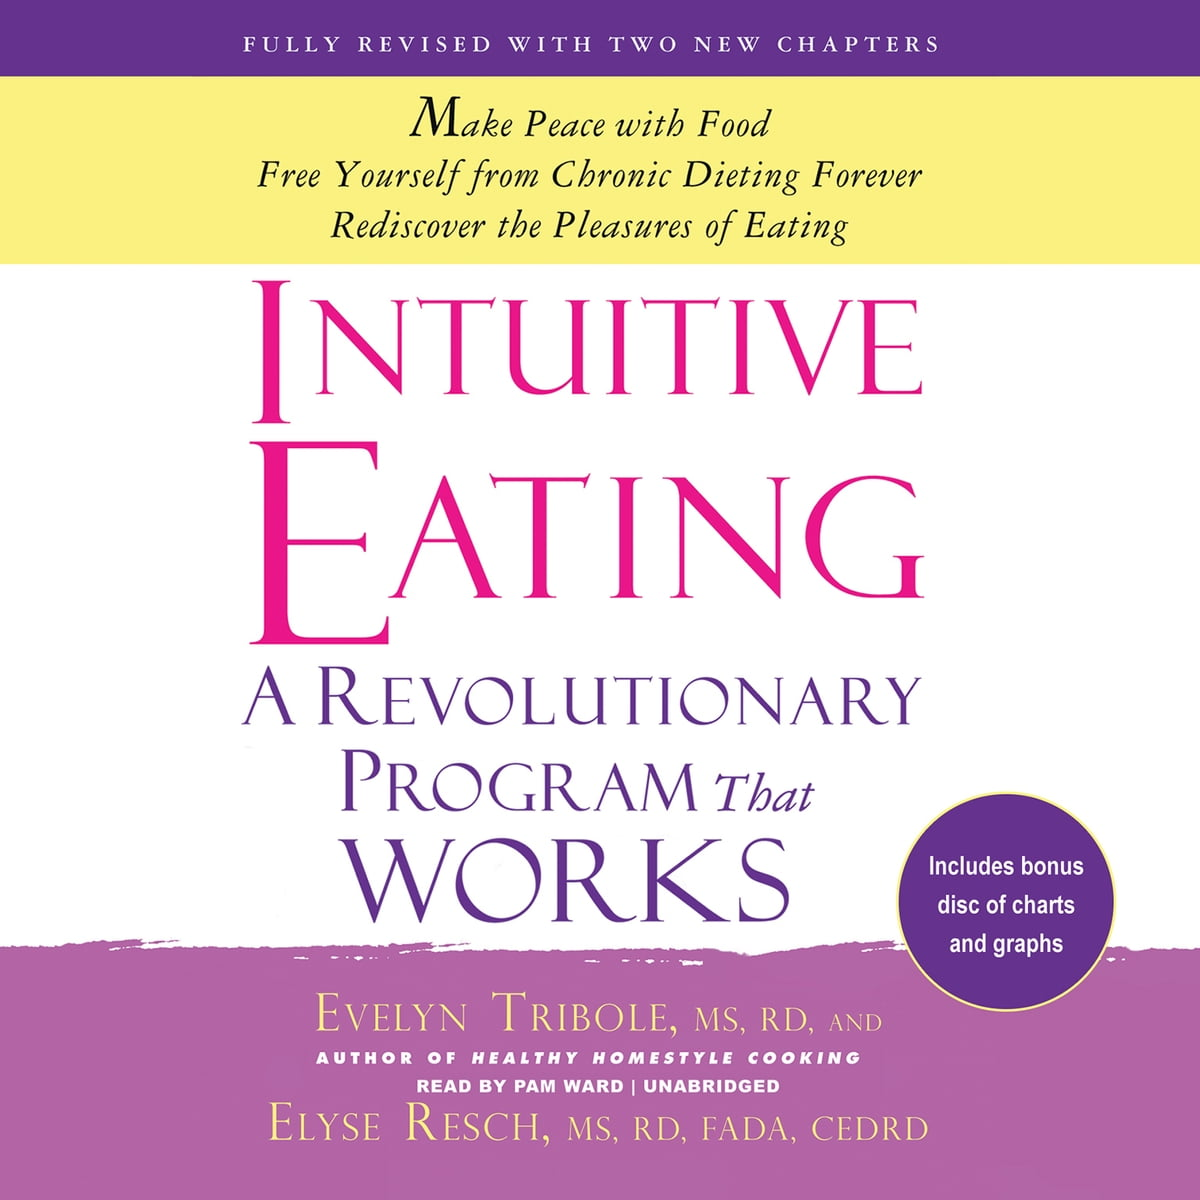 Intuitive Eating, 3rd Edition Audiobook by Evelyn Tribole MS, RDN, CEDRD-S - 9781481593724 | Rakuten Kobo United States